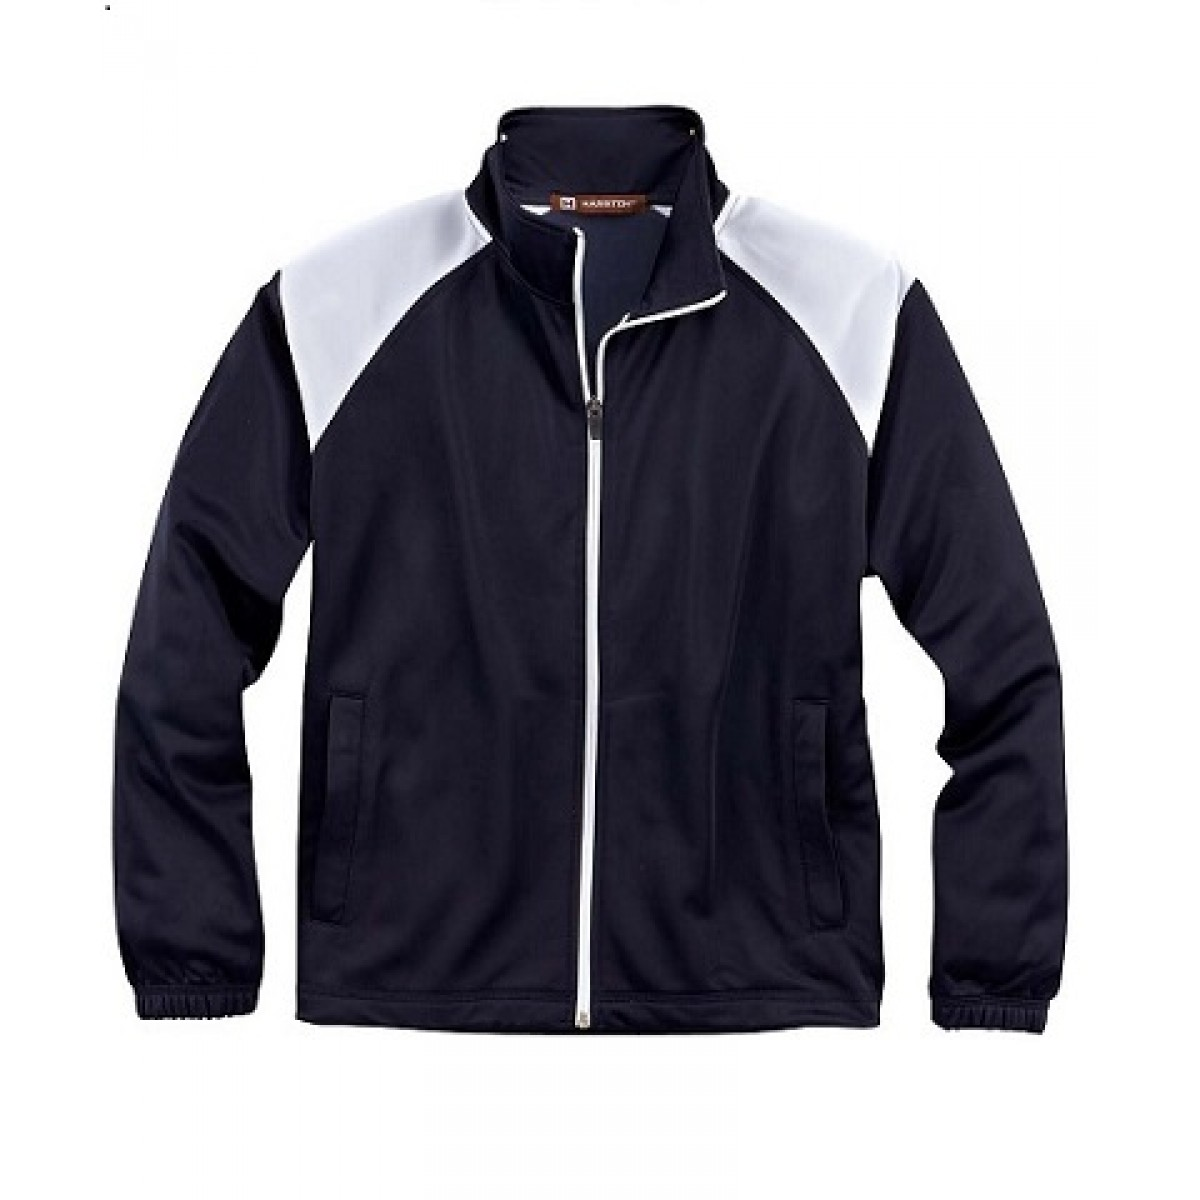 Embroidered Navy Tricot Track Jacket-Navy-3XL